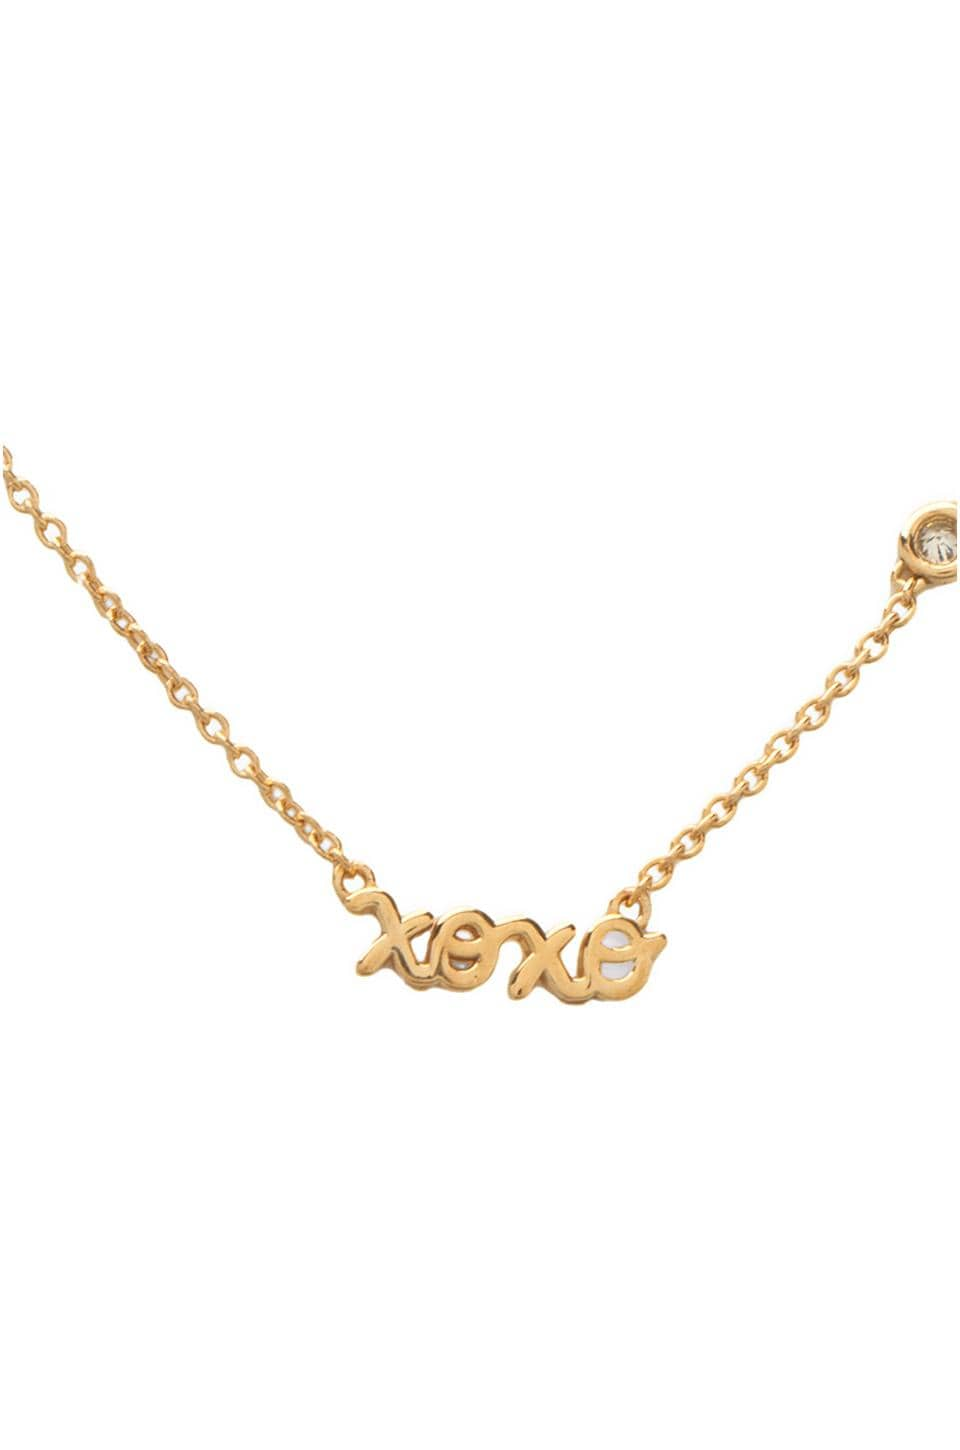 Shy by Sydney Evan XOXO Necklace with Diamond in Yellow Gold